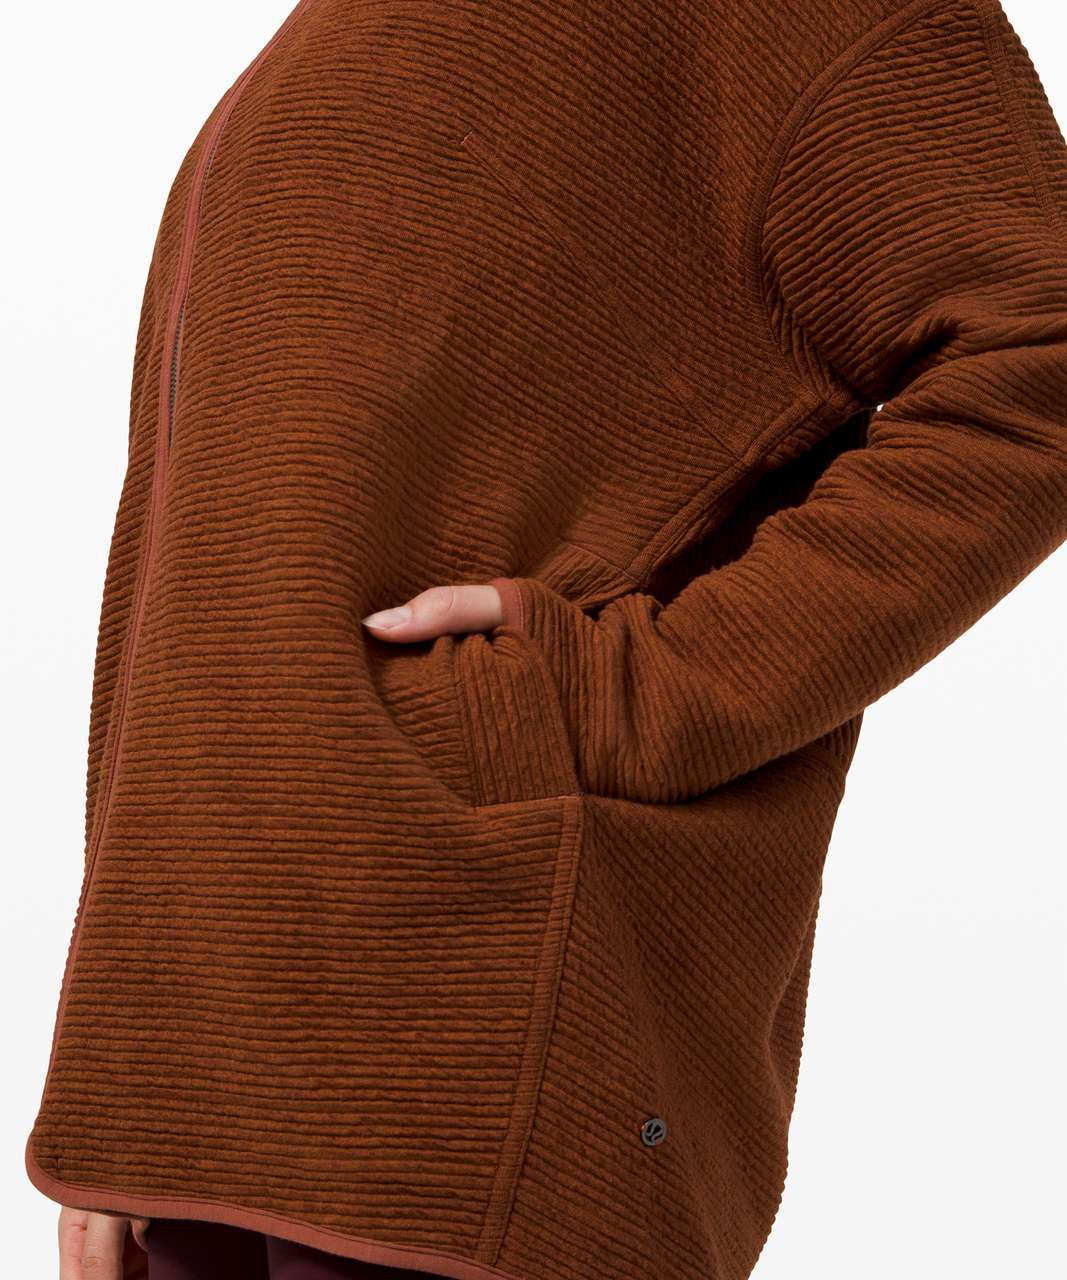 Lululemon Peaceful Moments Full Zip - Heathered Ancient Copper / Ancient Copper